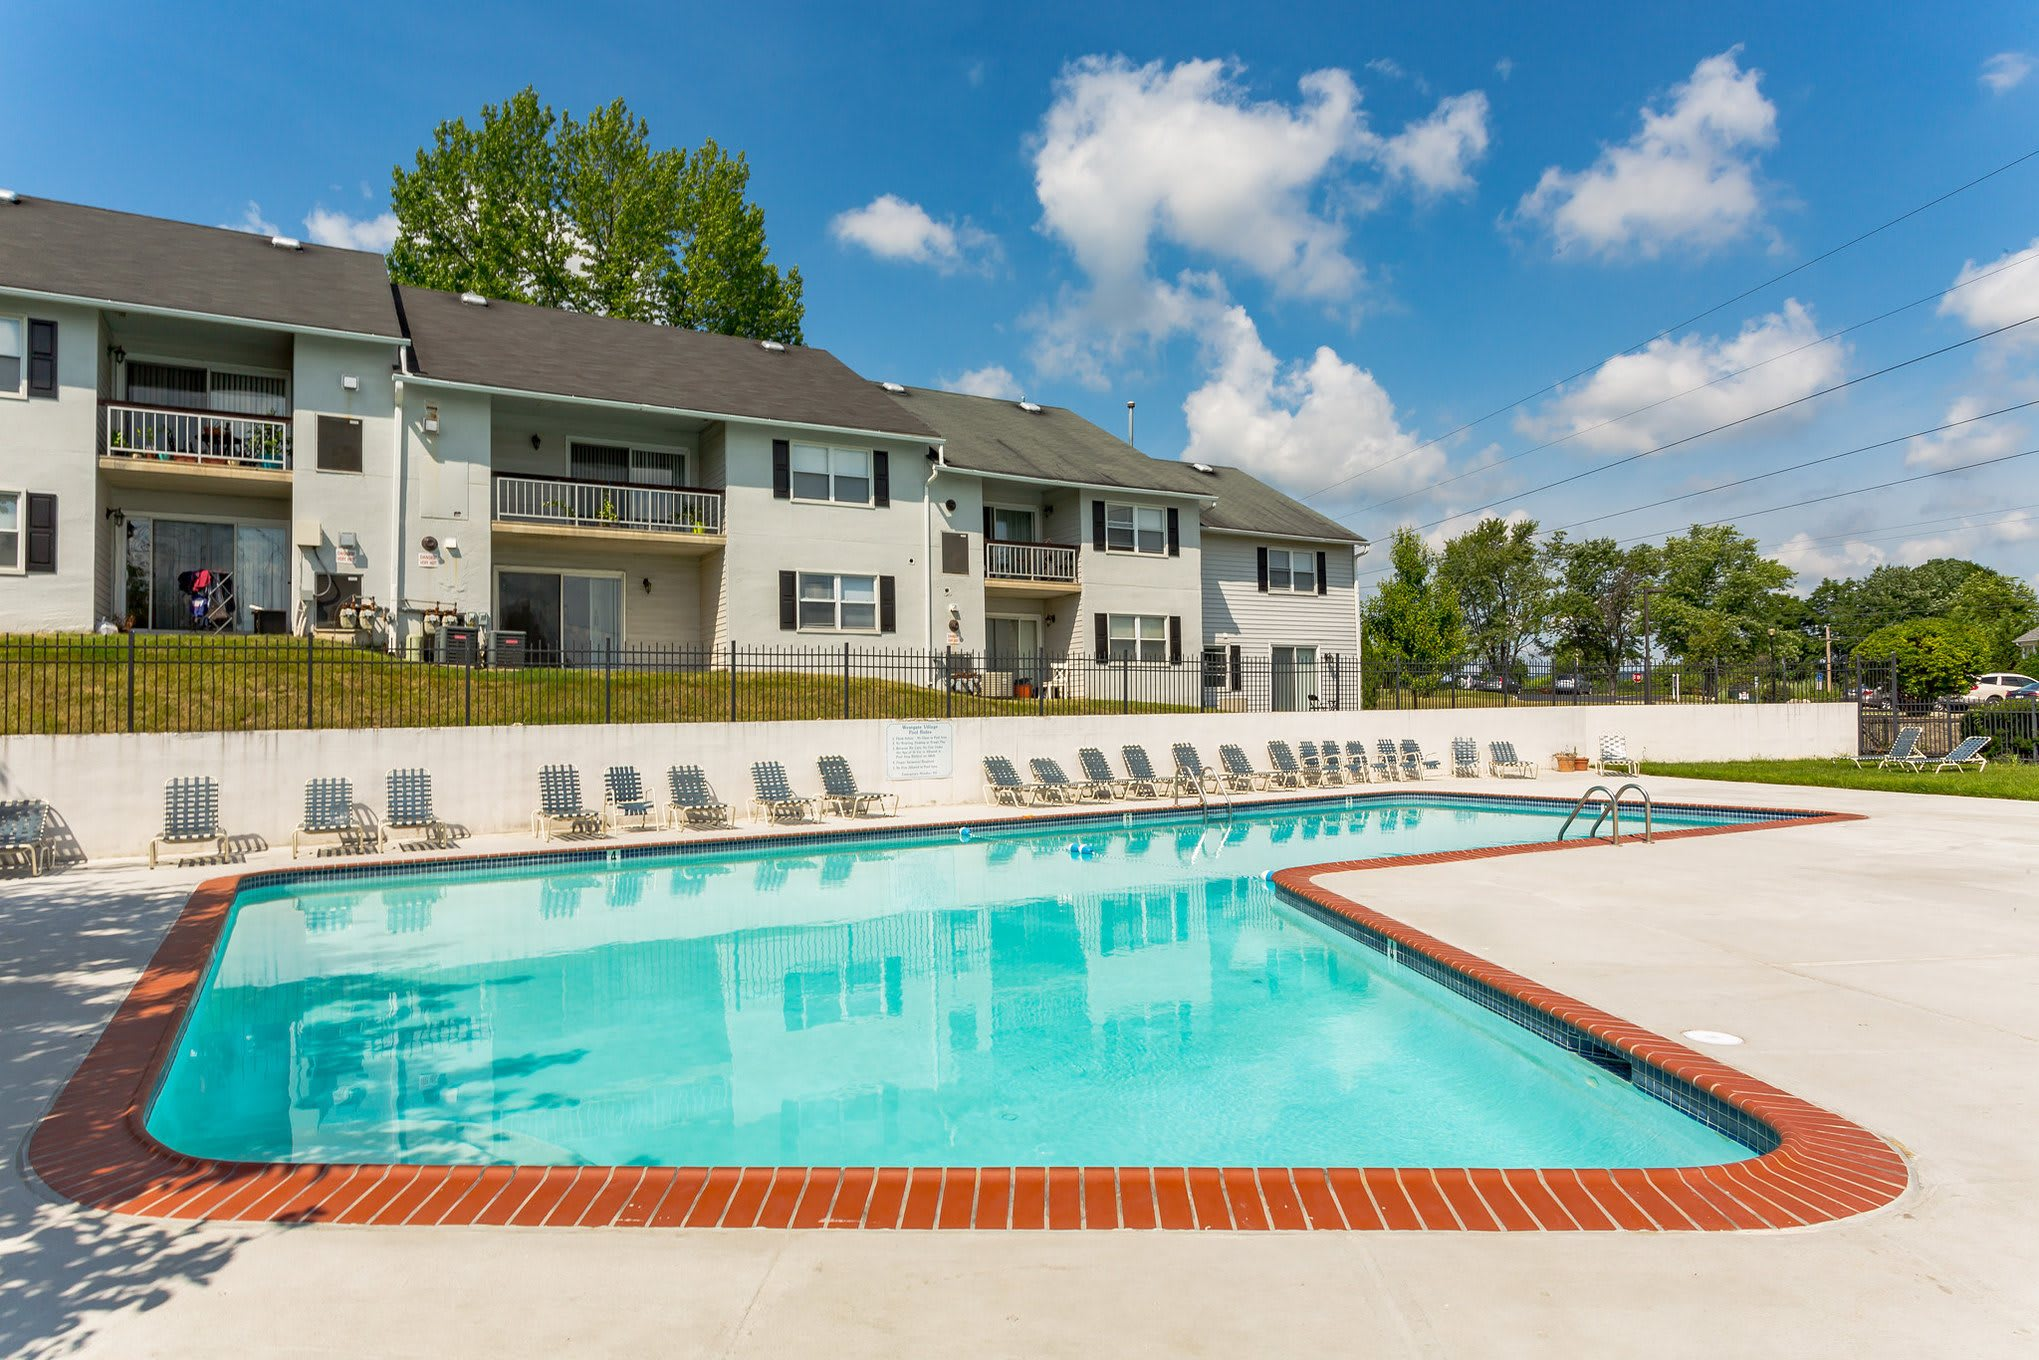 Poolside at Westgate Village Apartments  in Malvern, PA